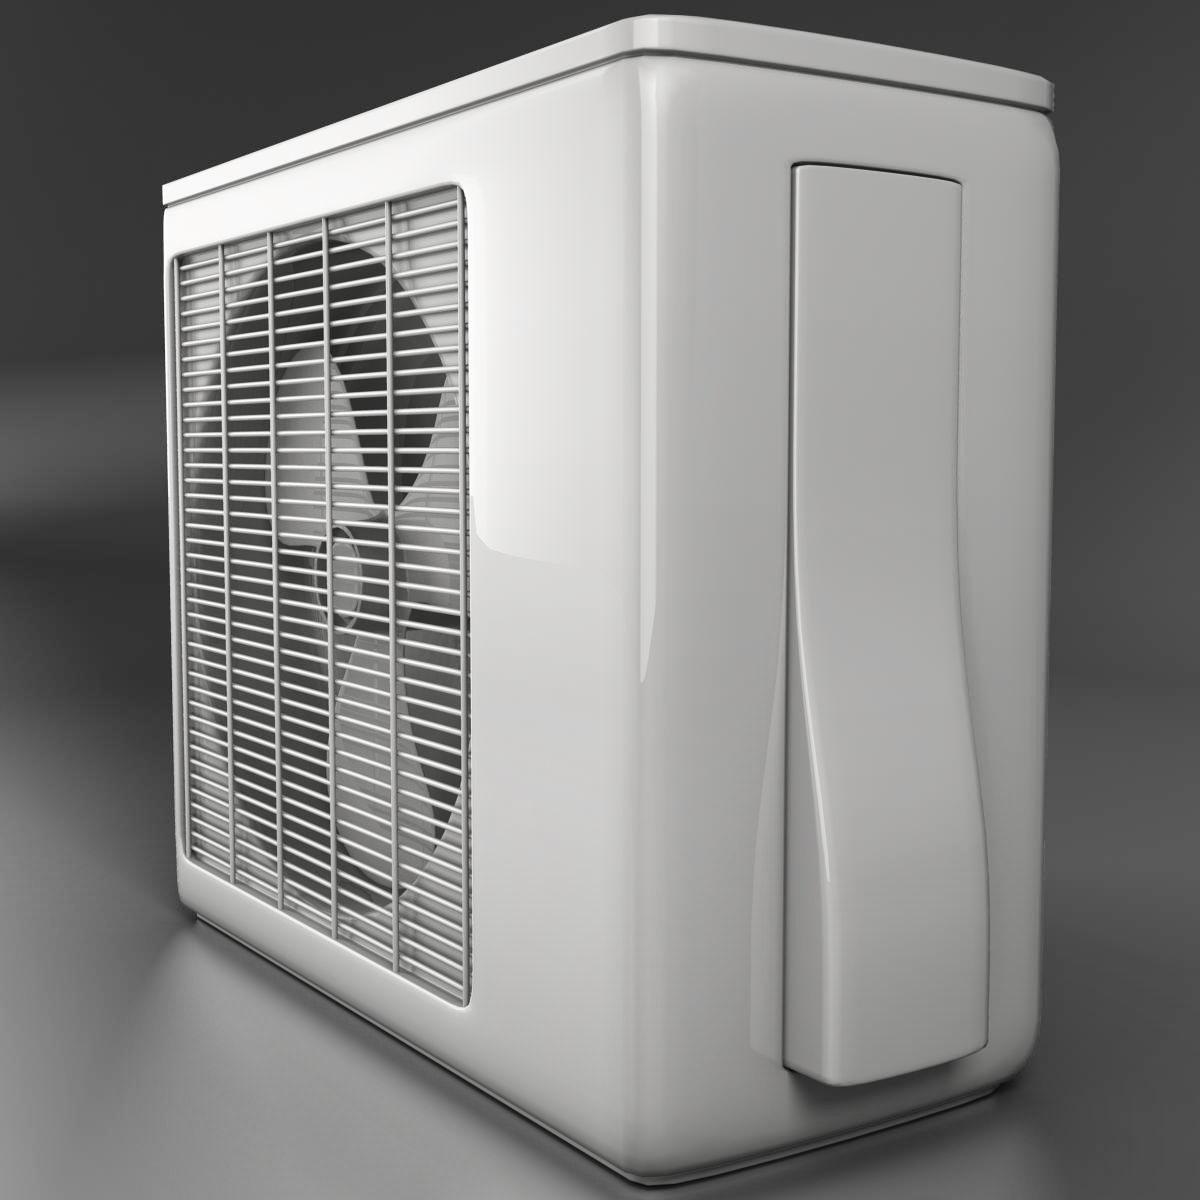 air conditioning 3d model 3ds max fbx c4d ma mb obj 159470